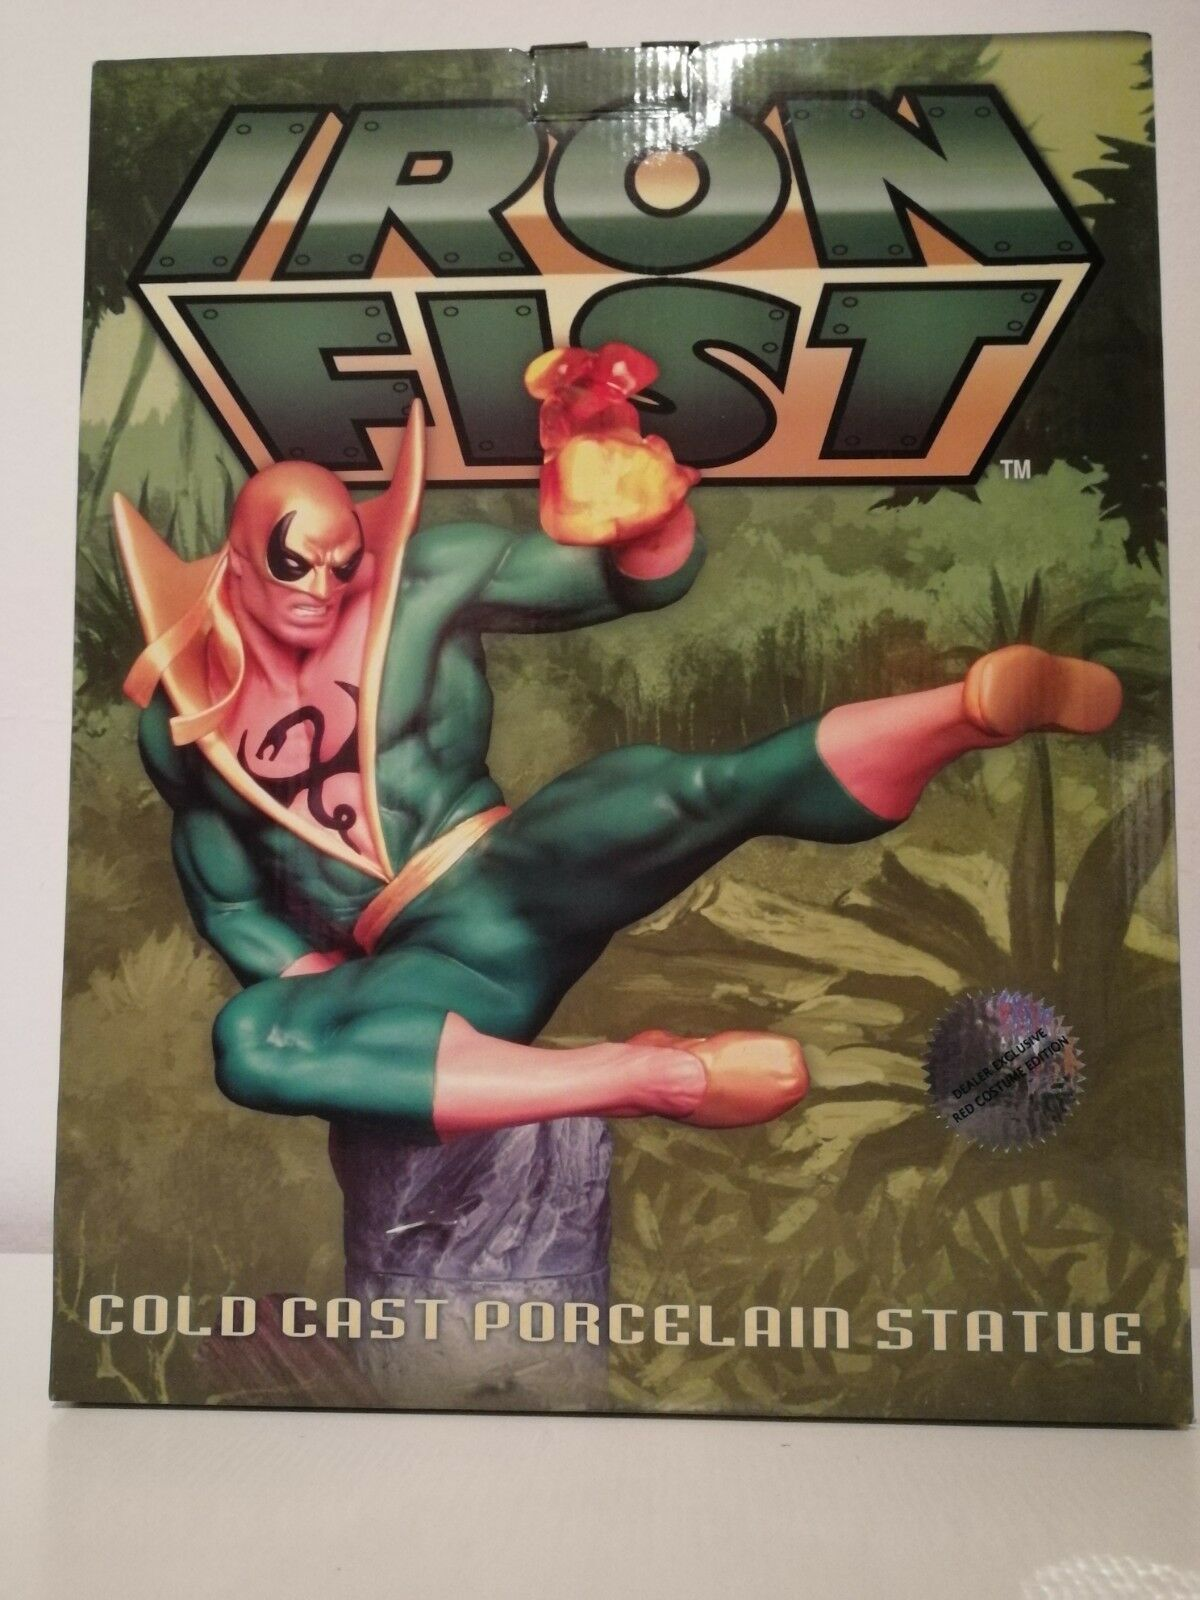 Hard Hero Iron Fist Cold Case Porcelain Statue Red Limited Limited 250